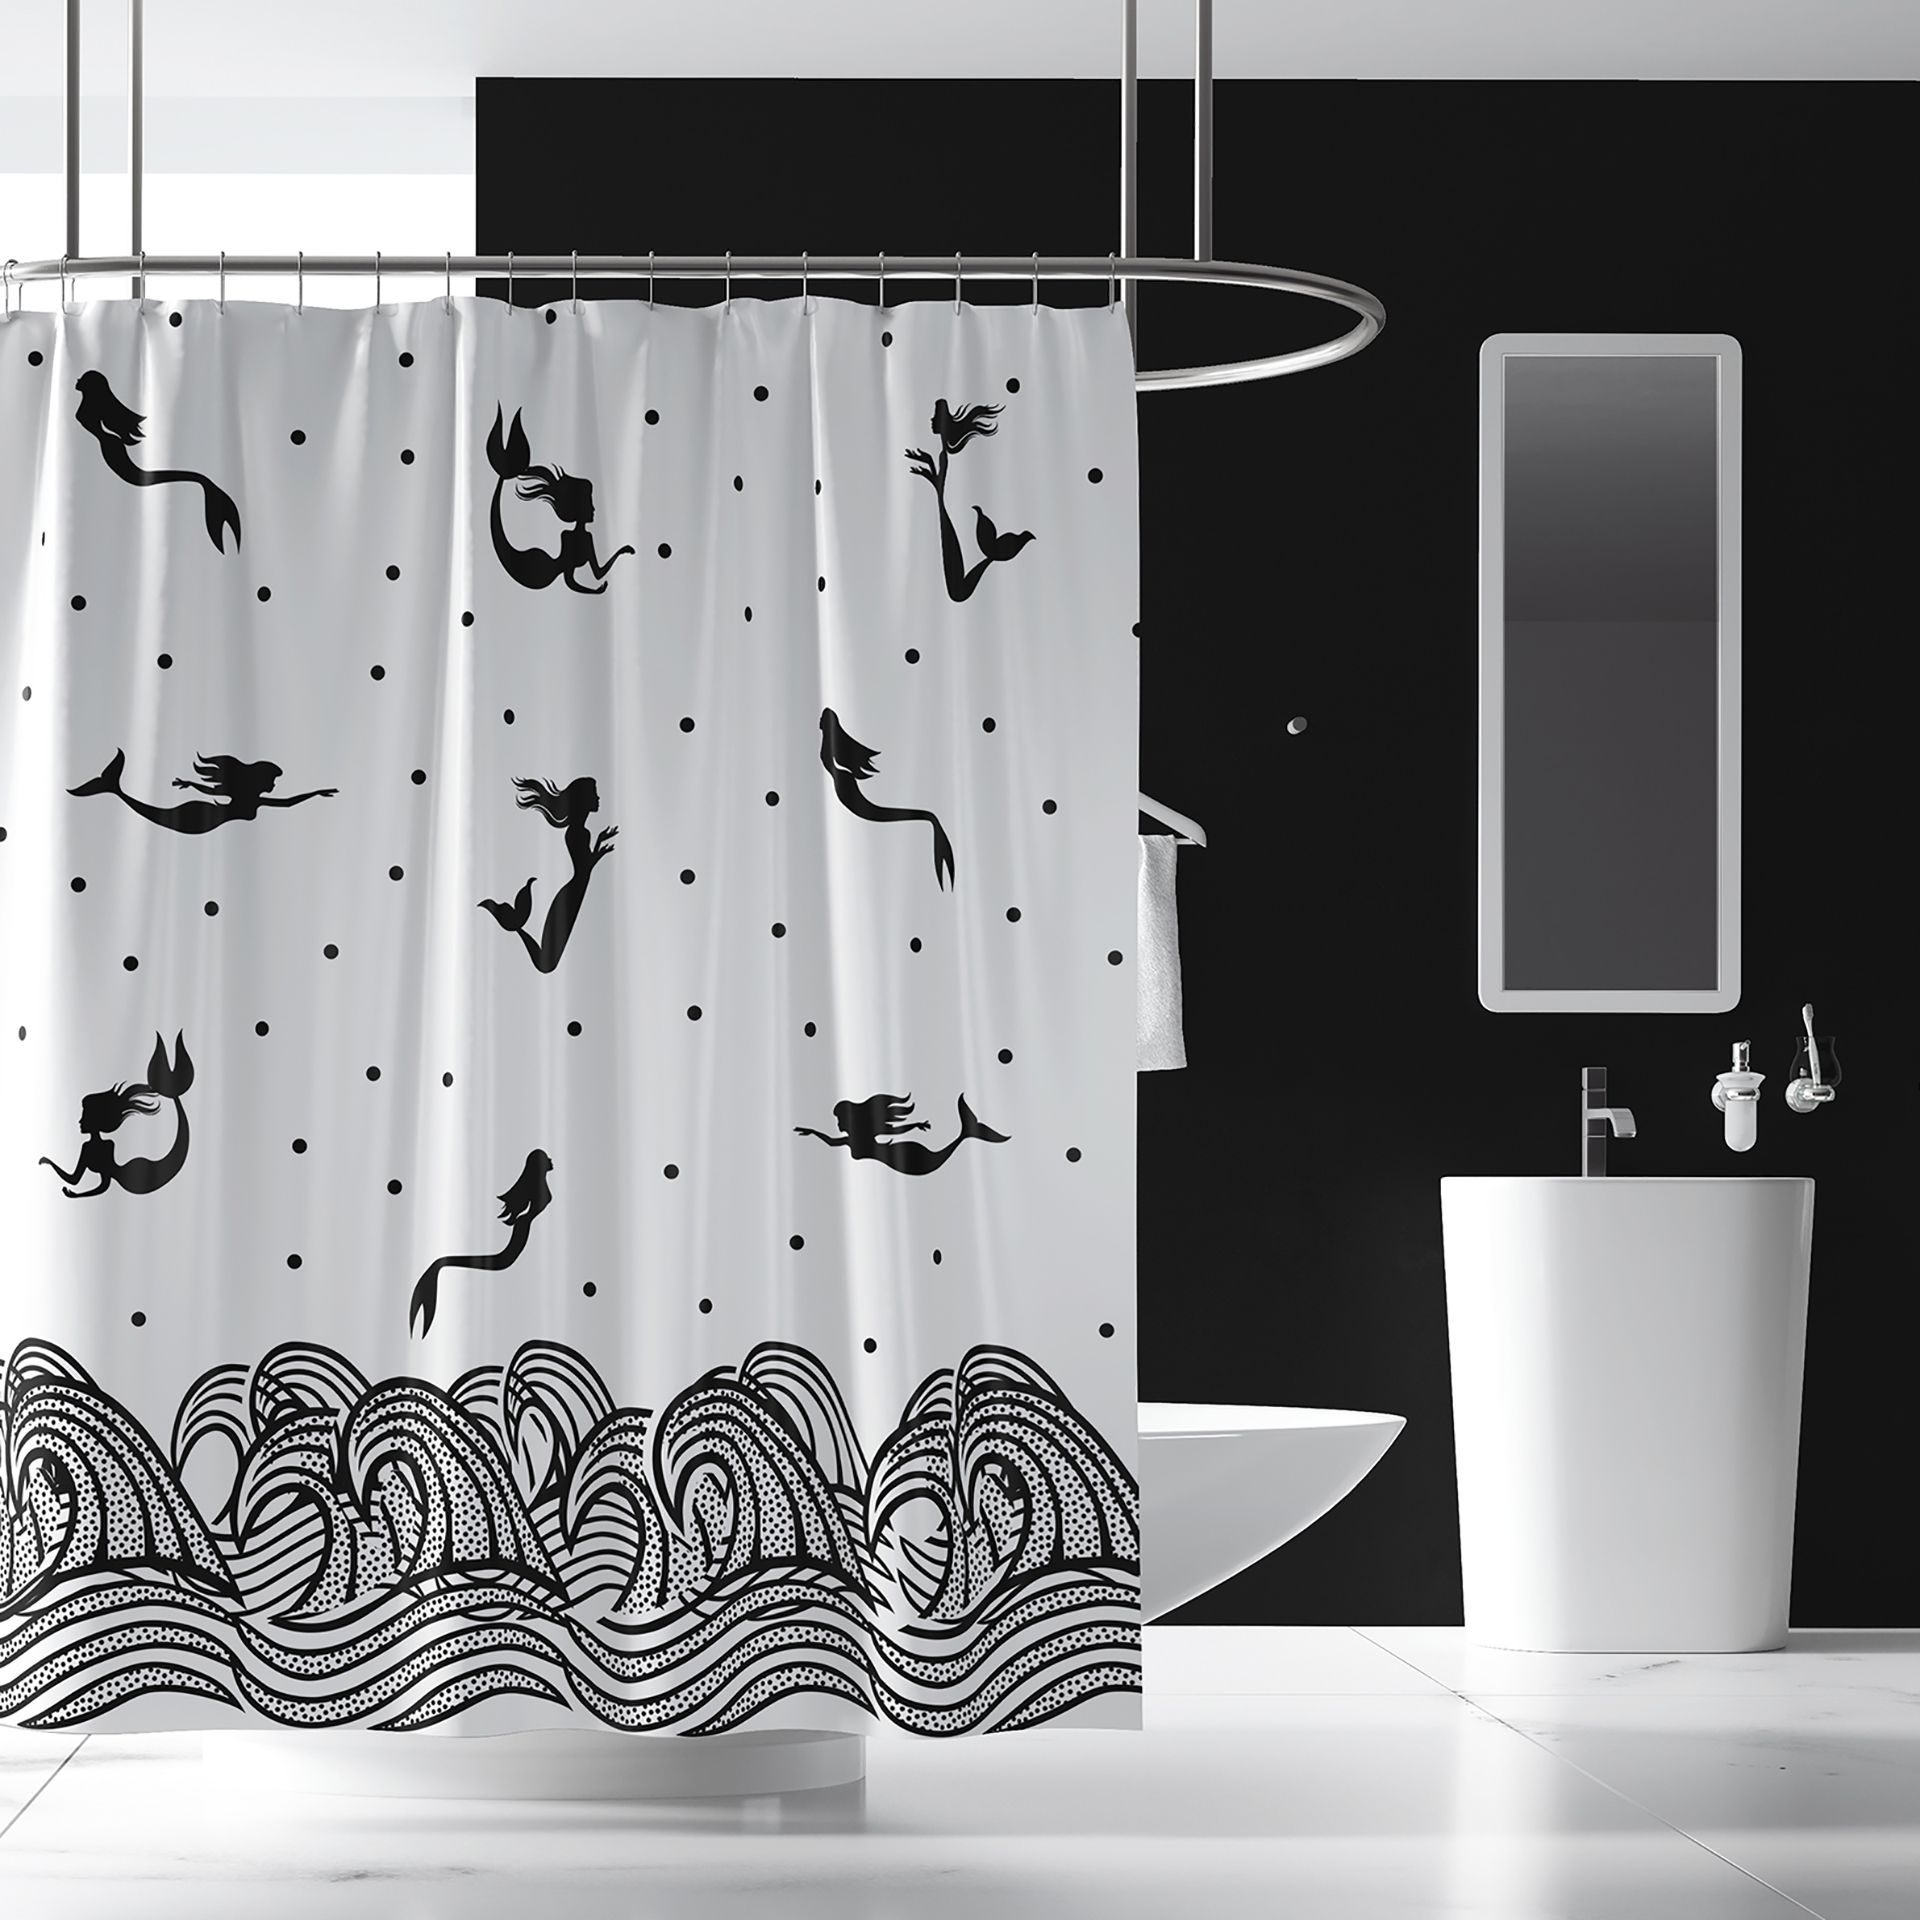 See The Many Faces Of Jane Black White Fabric Mermaid Shower